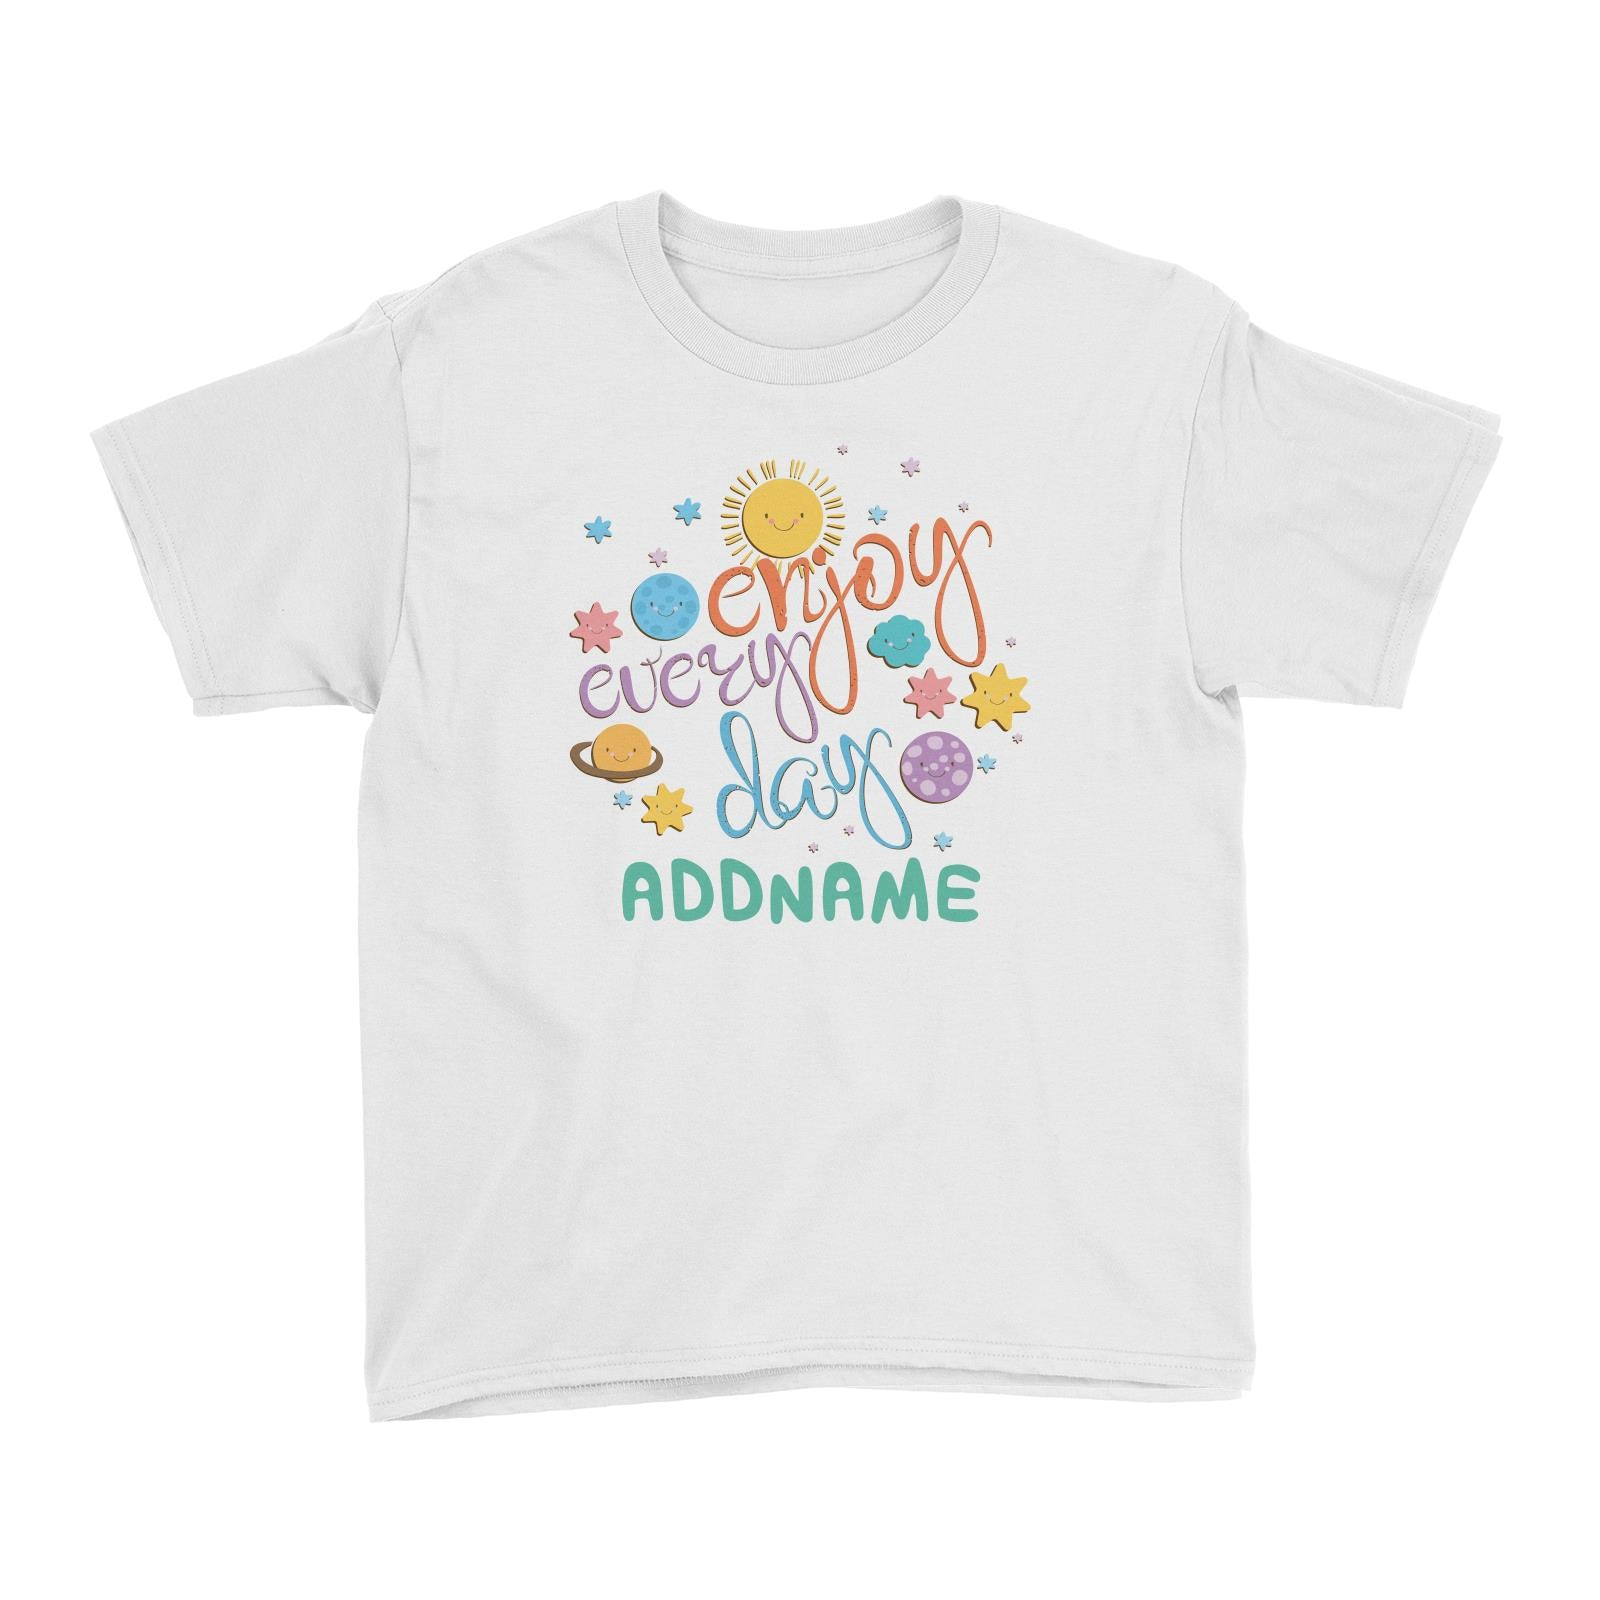 Children's Day Gift Series Enjoy Every Day Space Addname Kid's T-Shirt